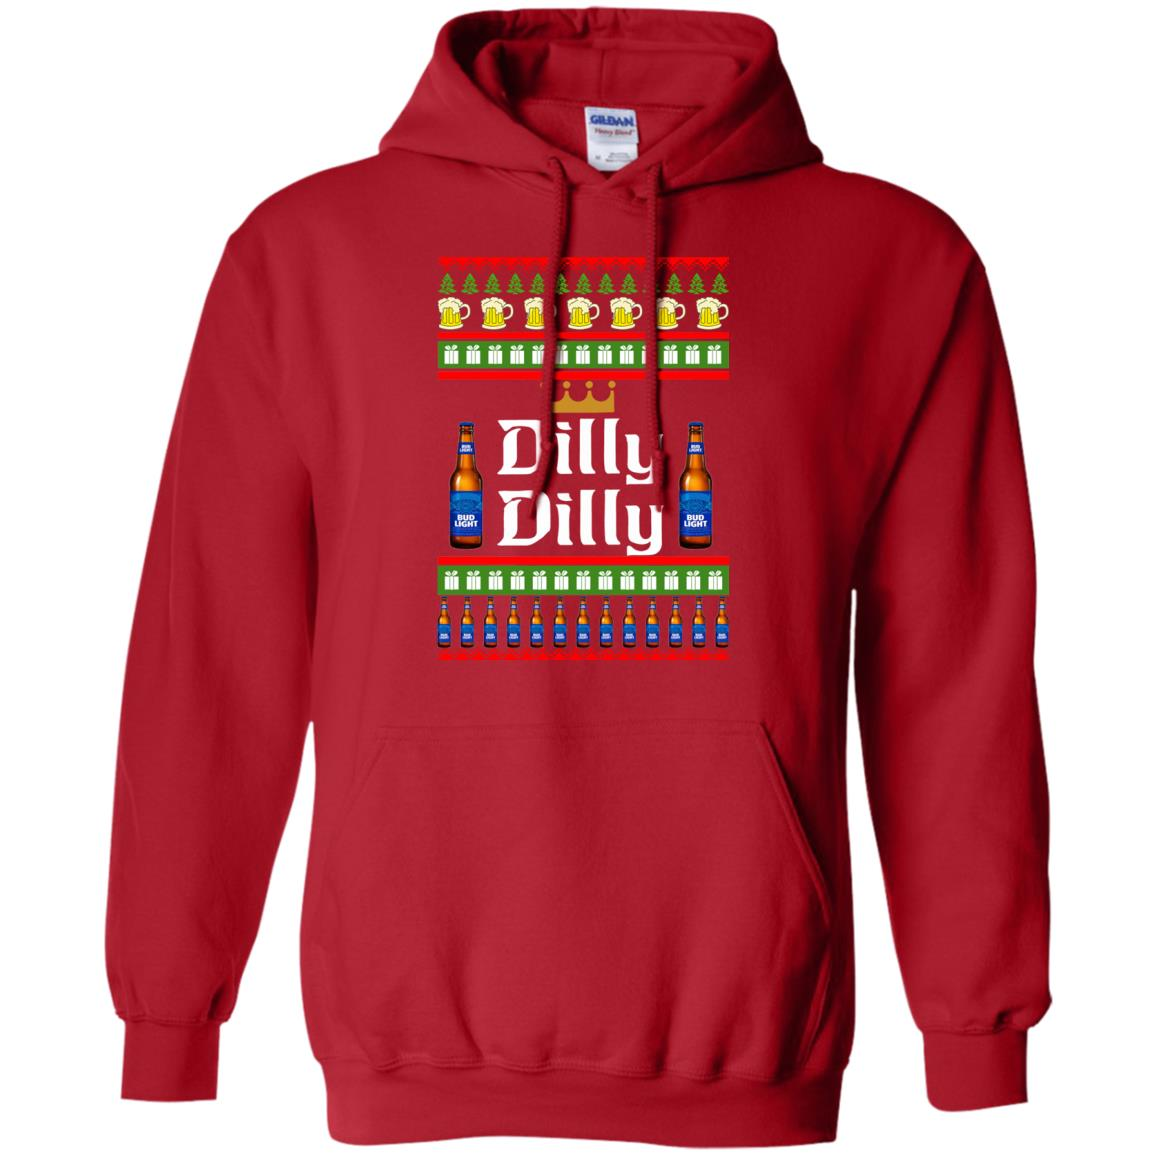 image 4235 - Bud Light: Dilly Dilly Ugly Sweater, Christmas Sweatshirts